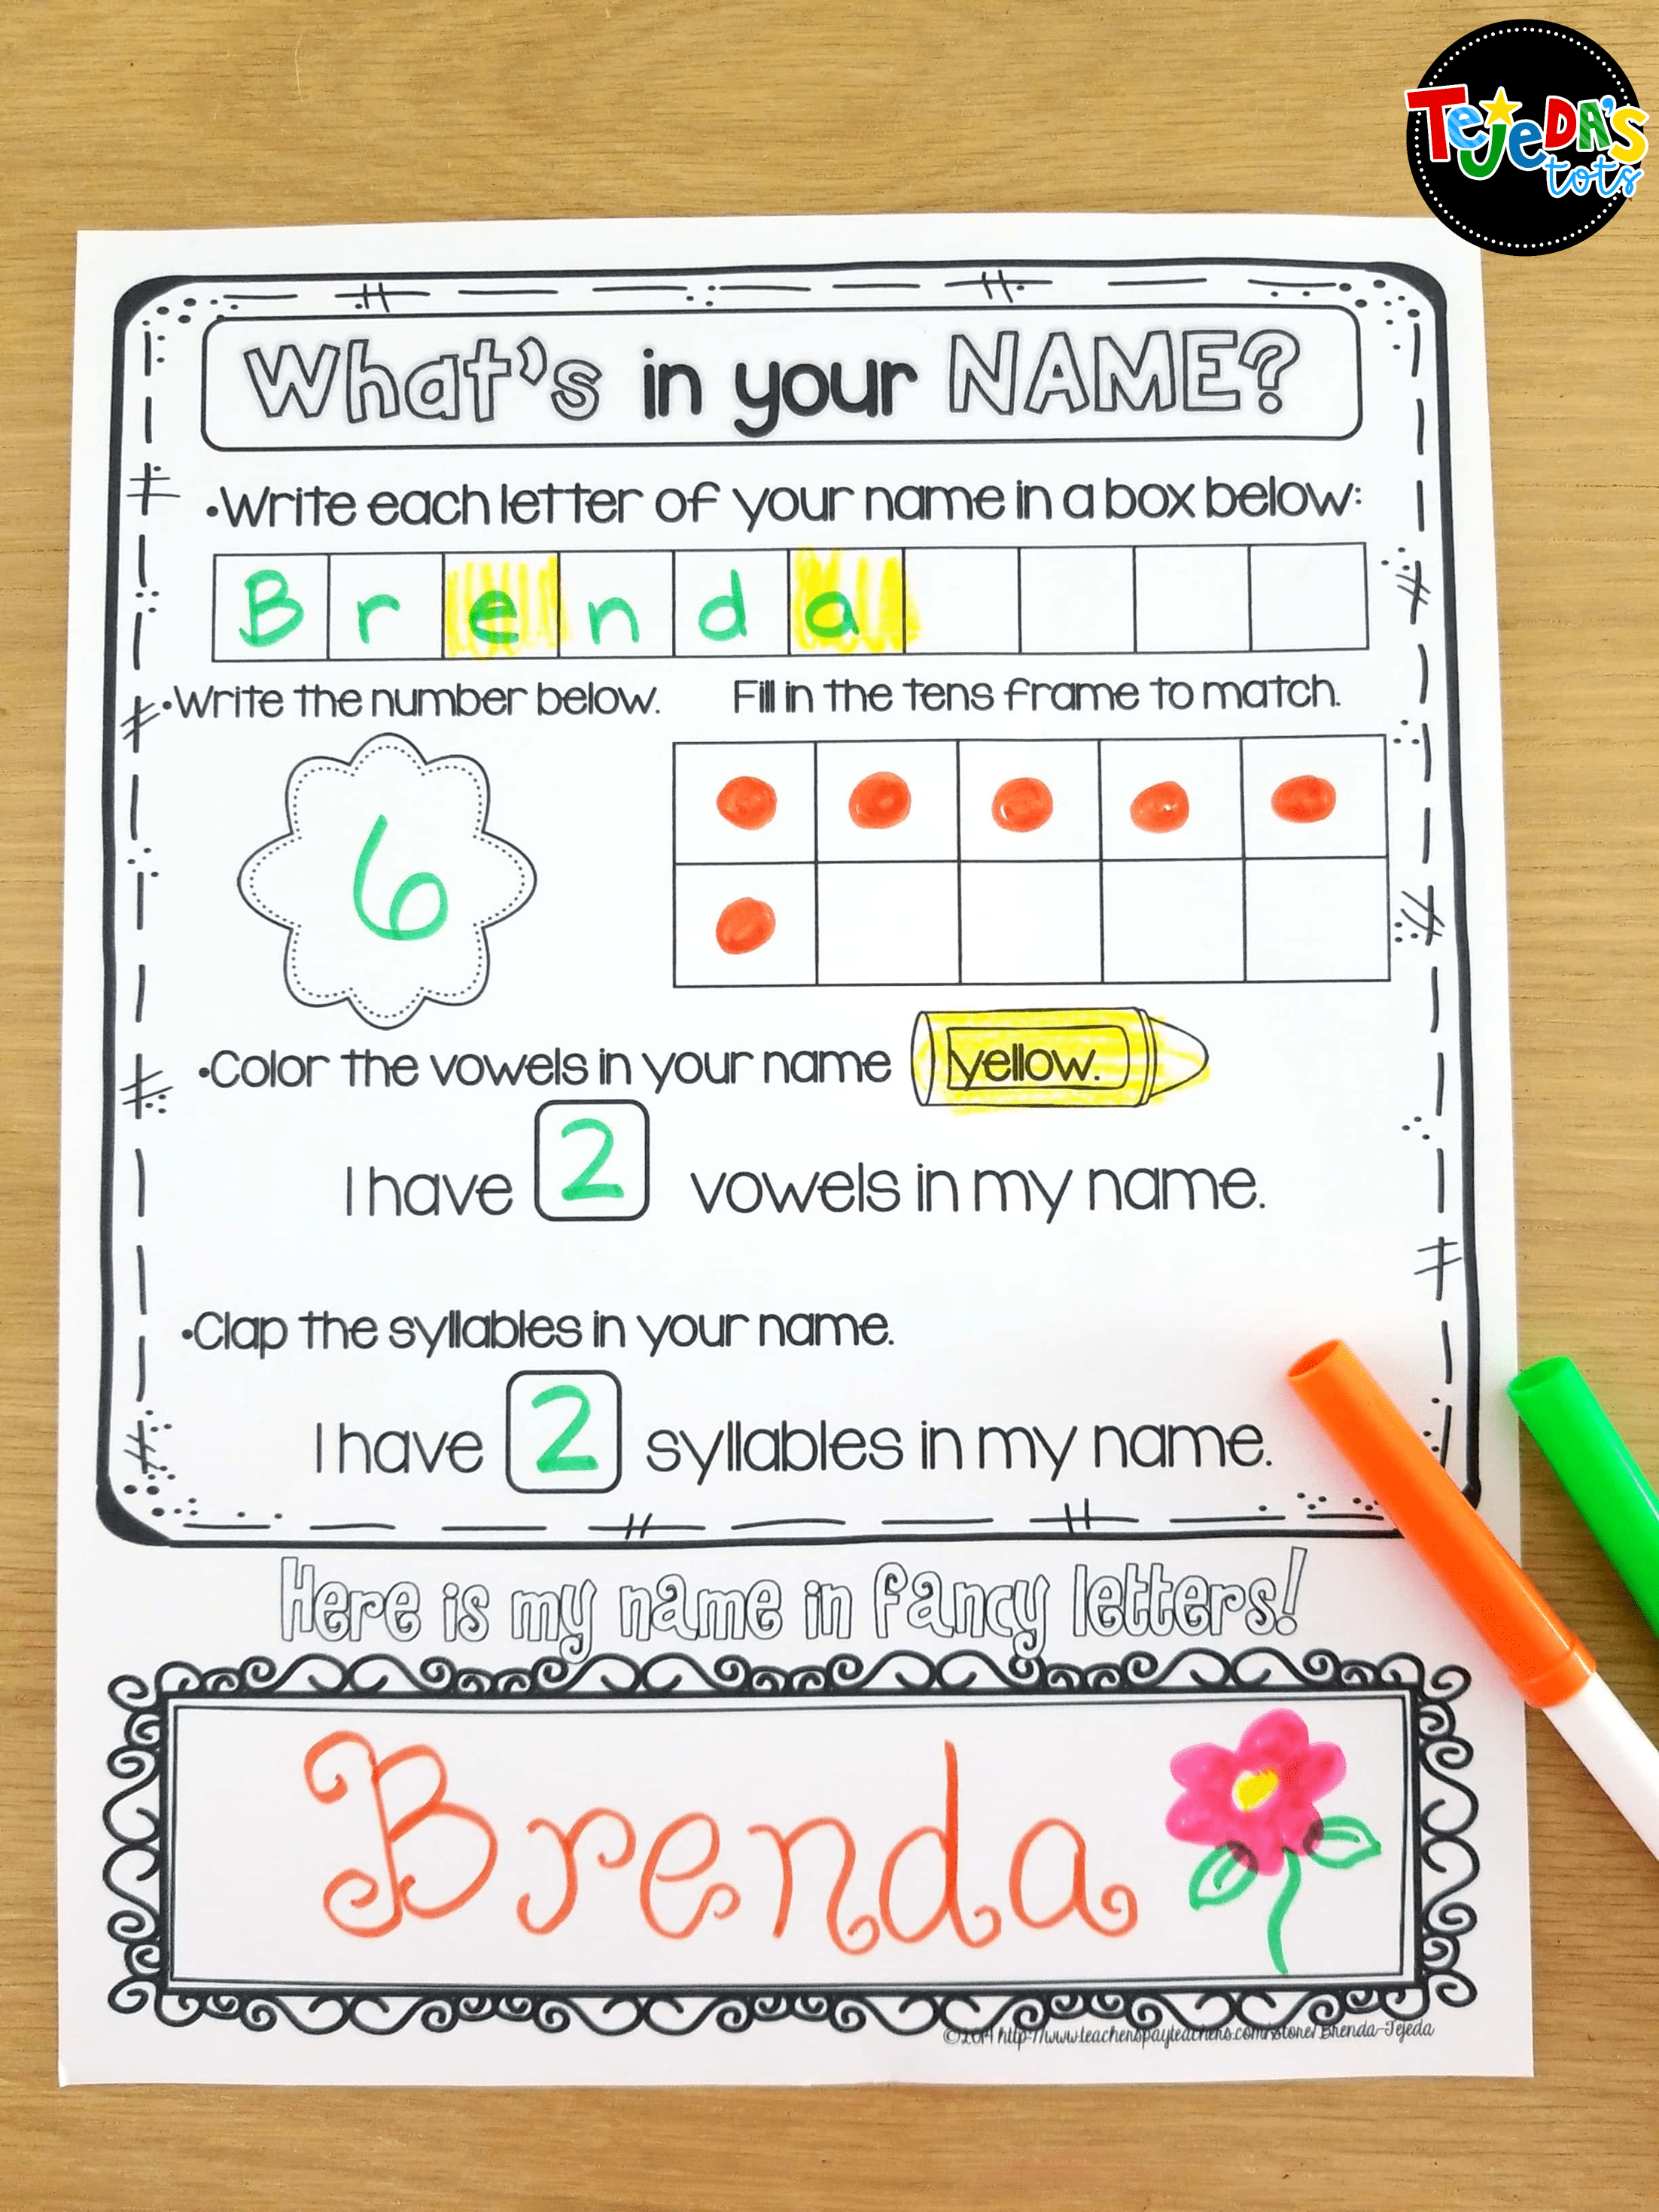 Free Name Printables To Go With The Book Chrysanthemumkevin - Chrysanthemum Free Printable Activities